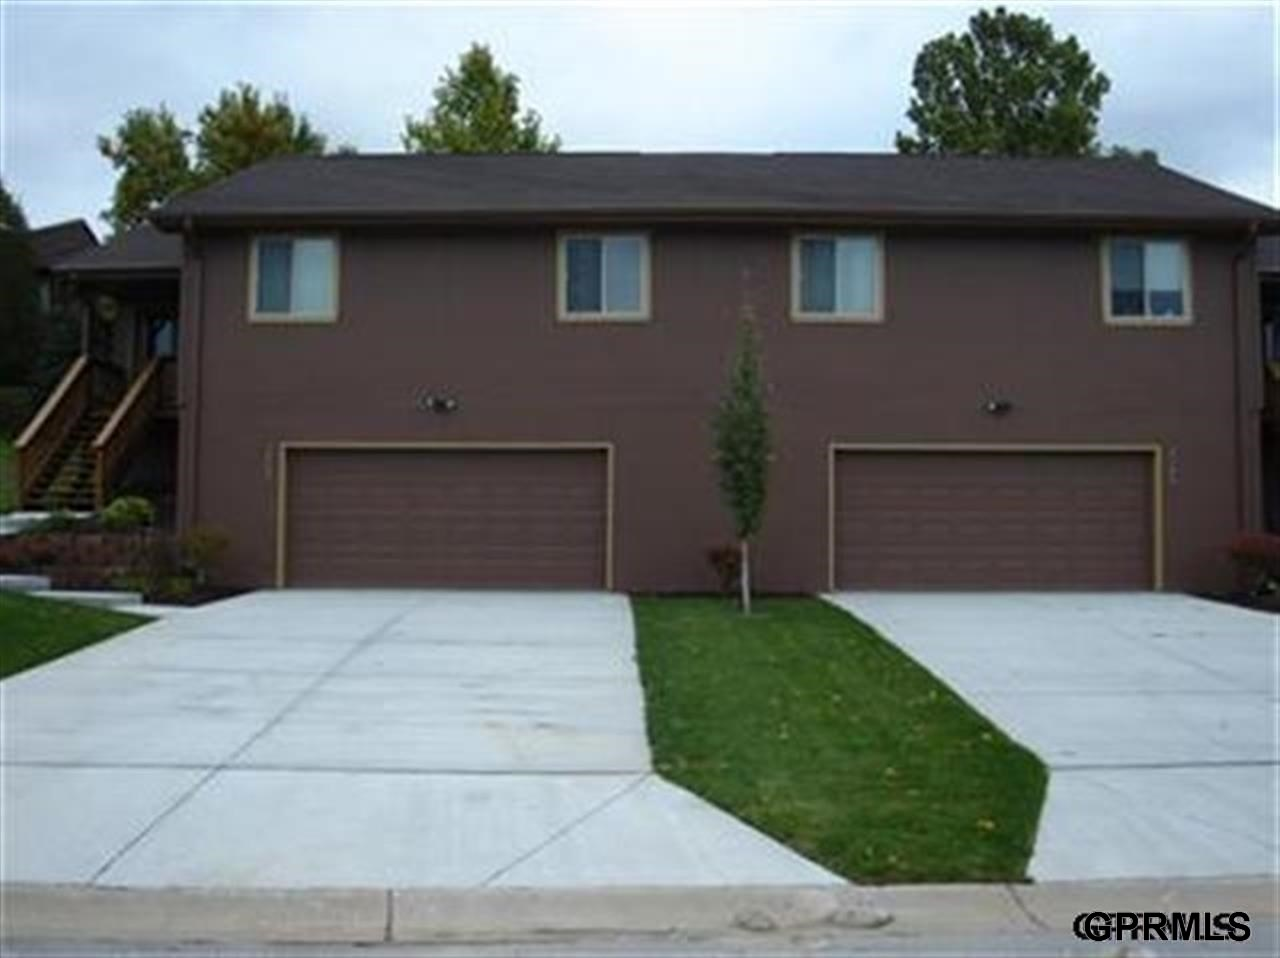 Rental Homes for Rent, ListingId:29561670, location: 7161 N 79th Court Omaha 68122